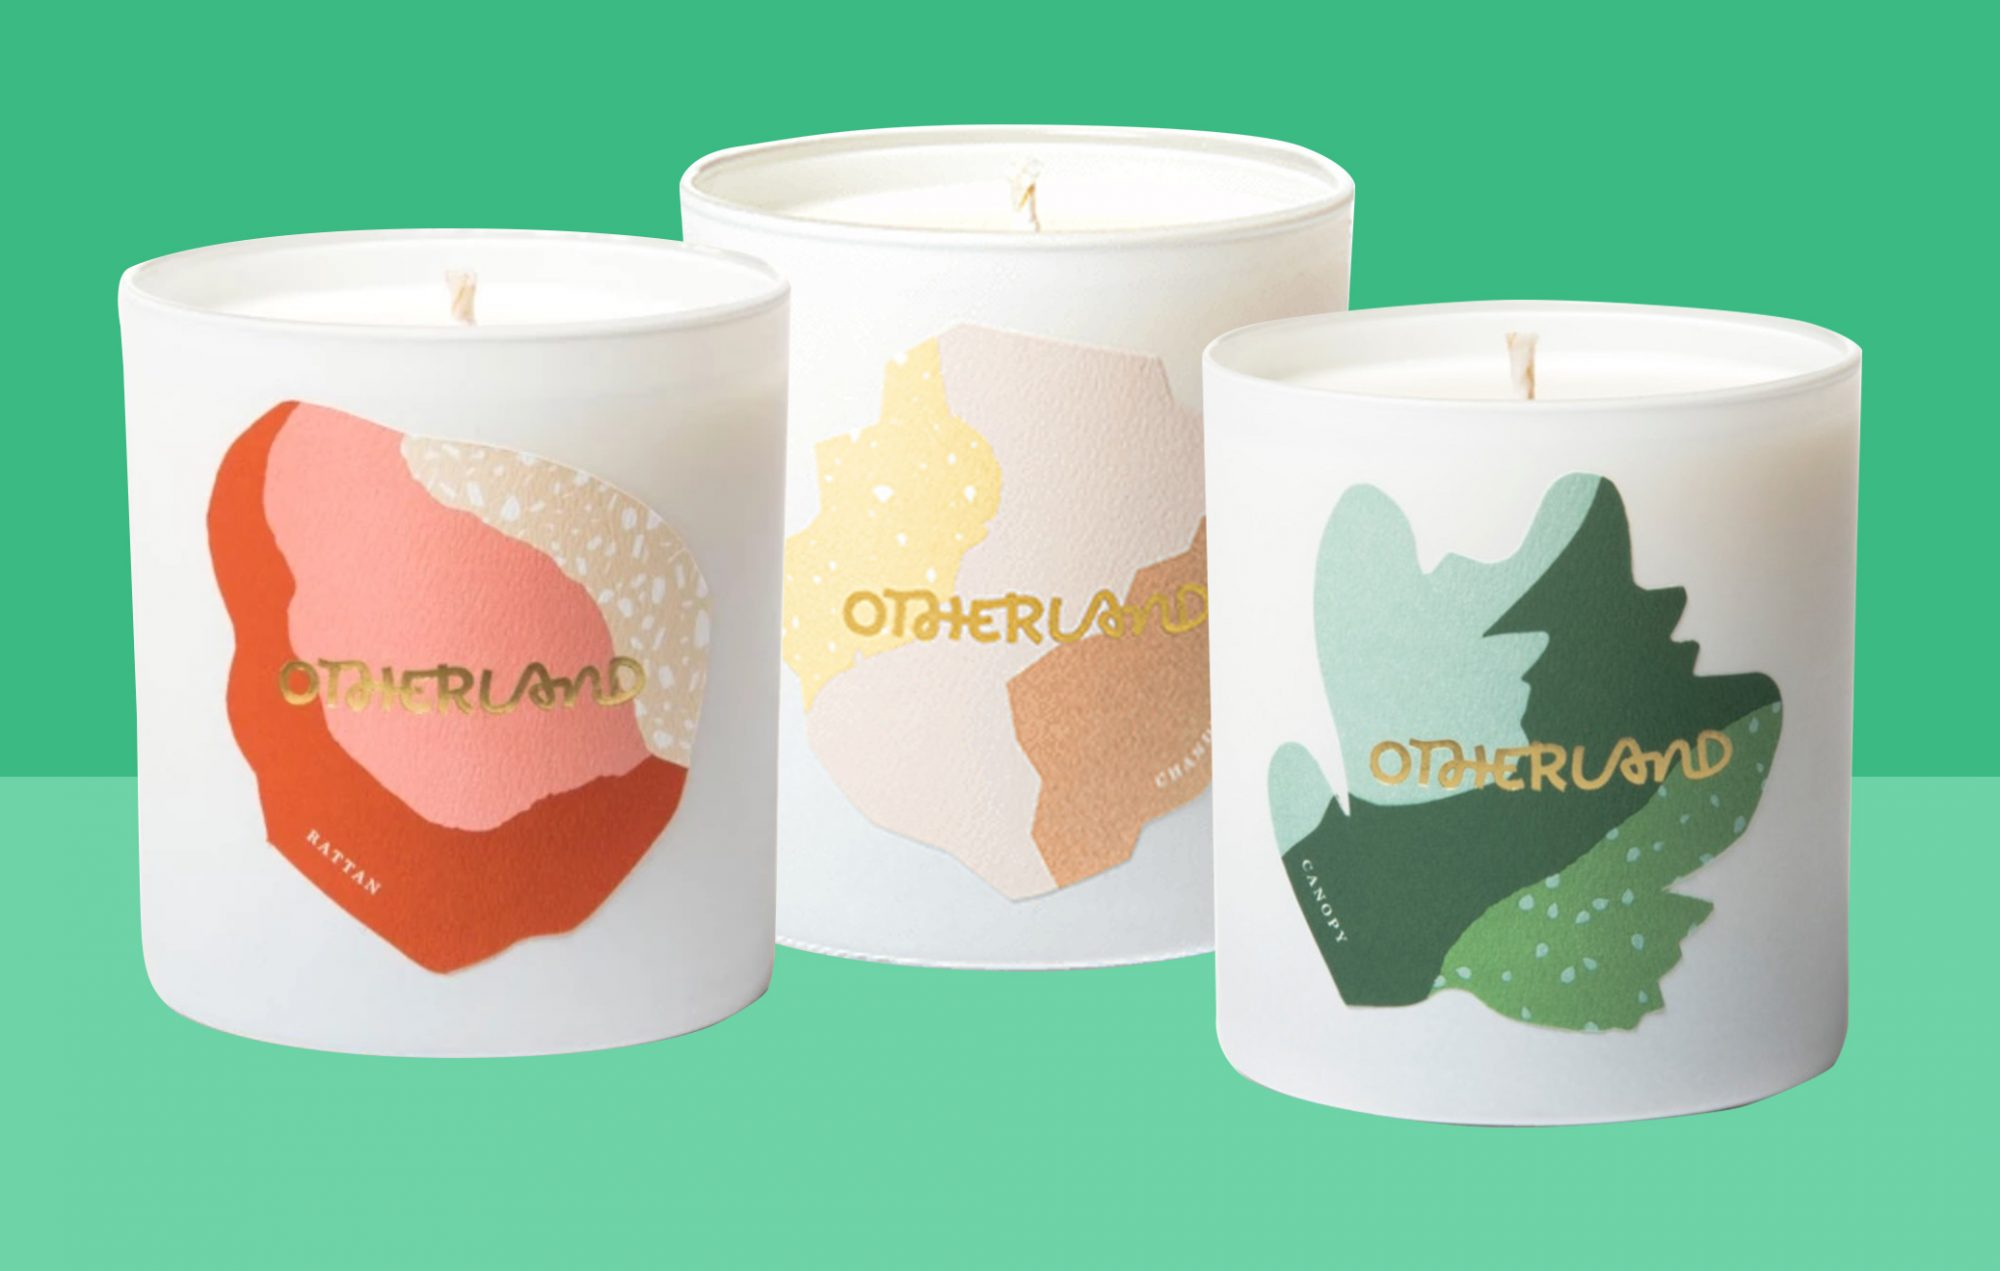 best friend christmas gifts: otherland-candle